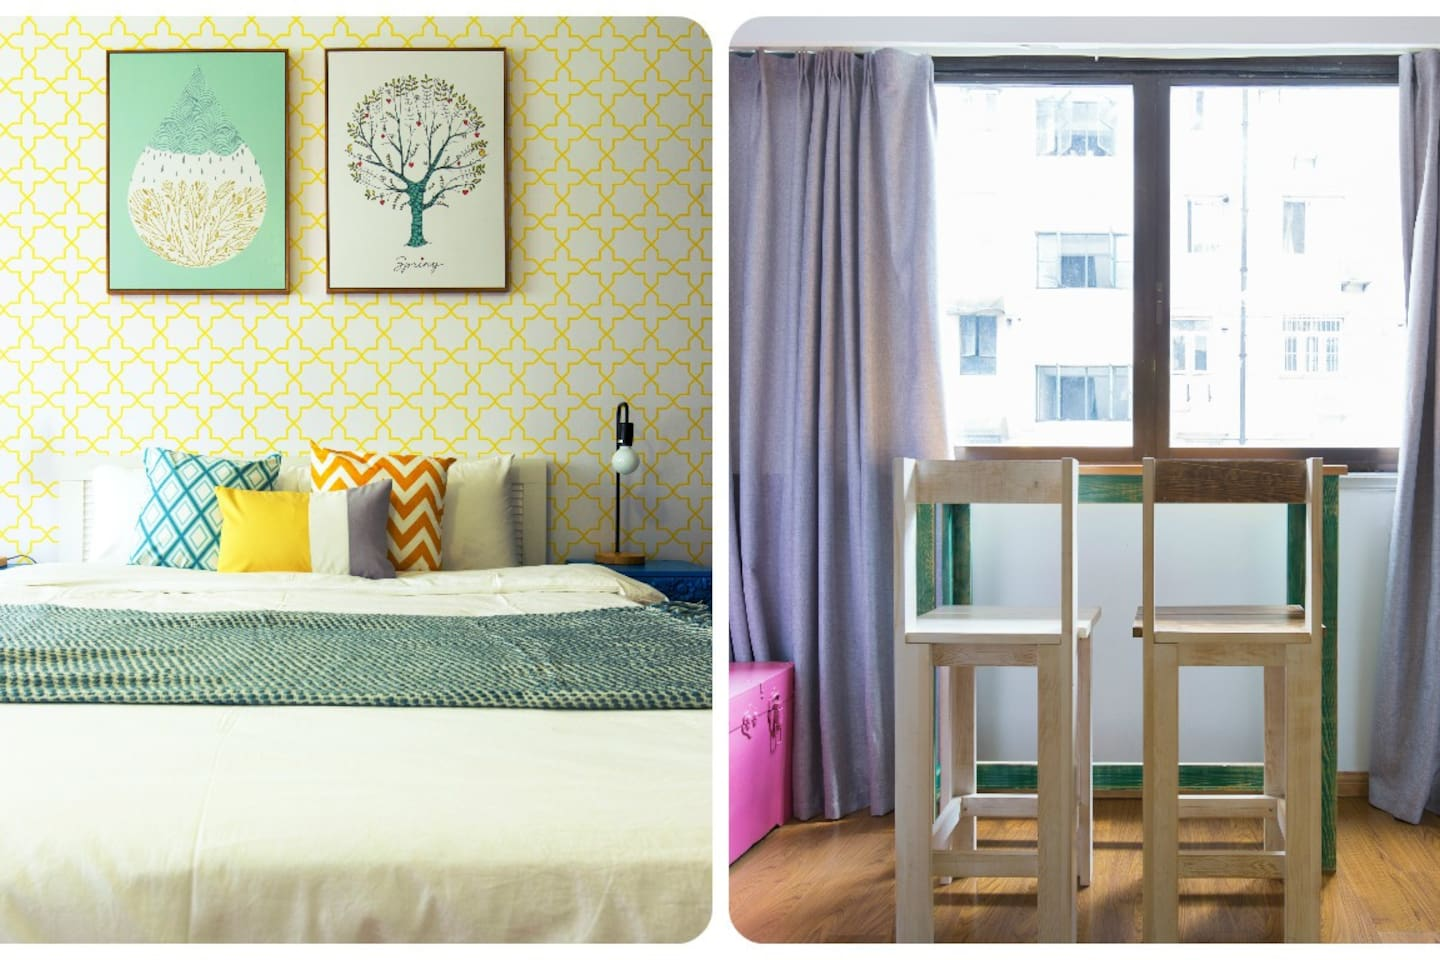 Welcome to the cozy Jianguo House! A clean & modern home perfect for travellers looking for comfort & great value!